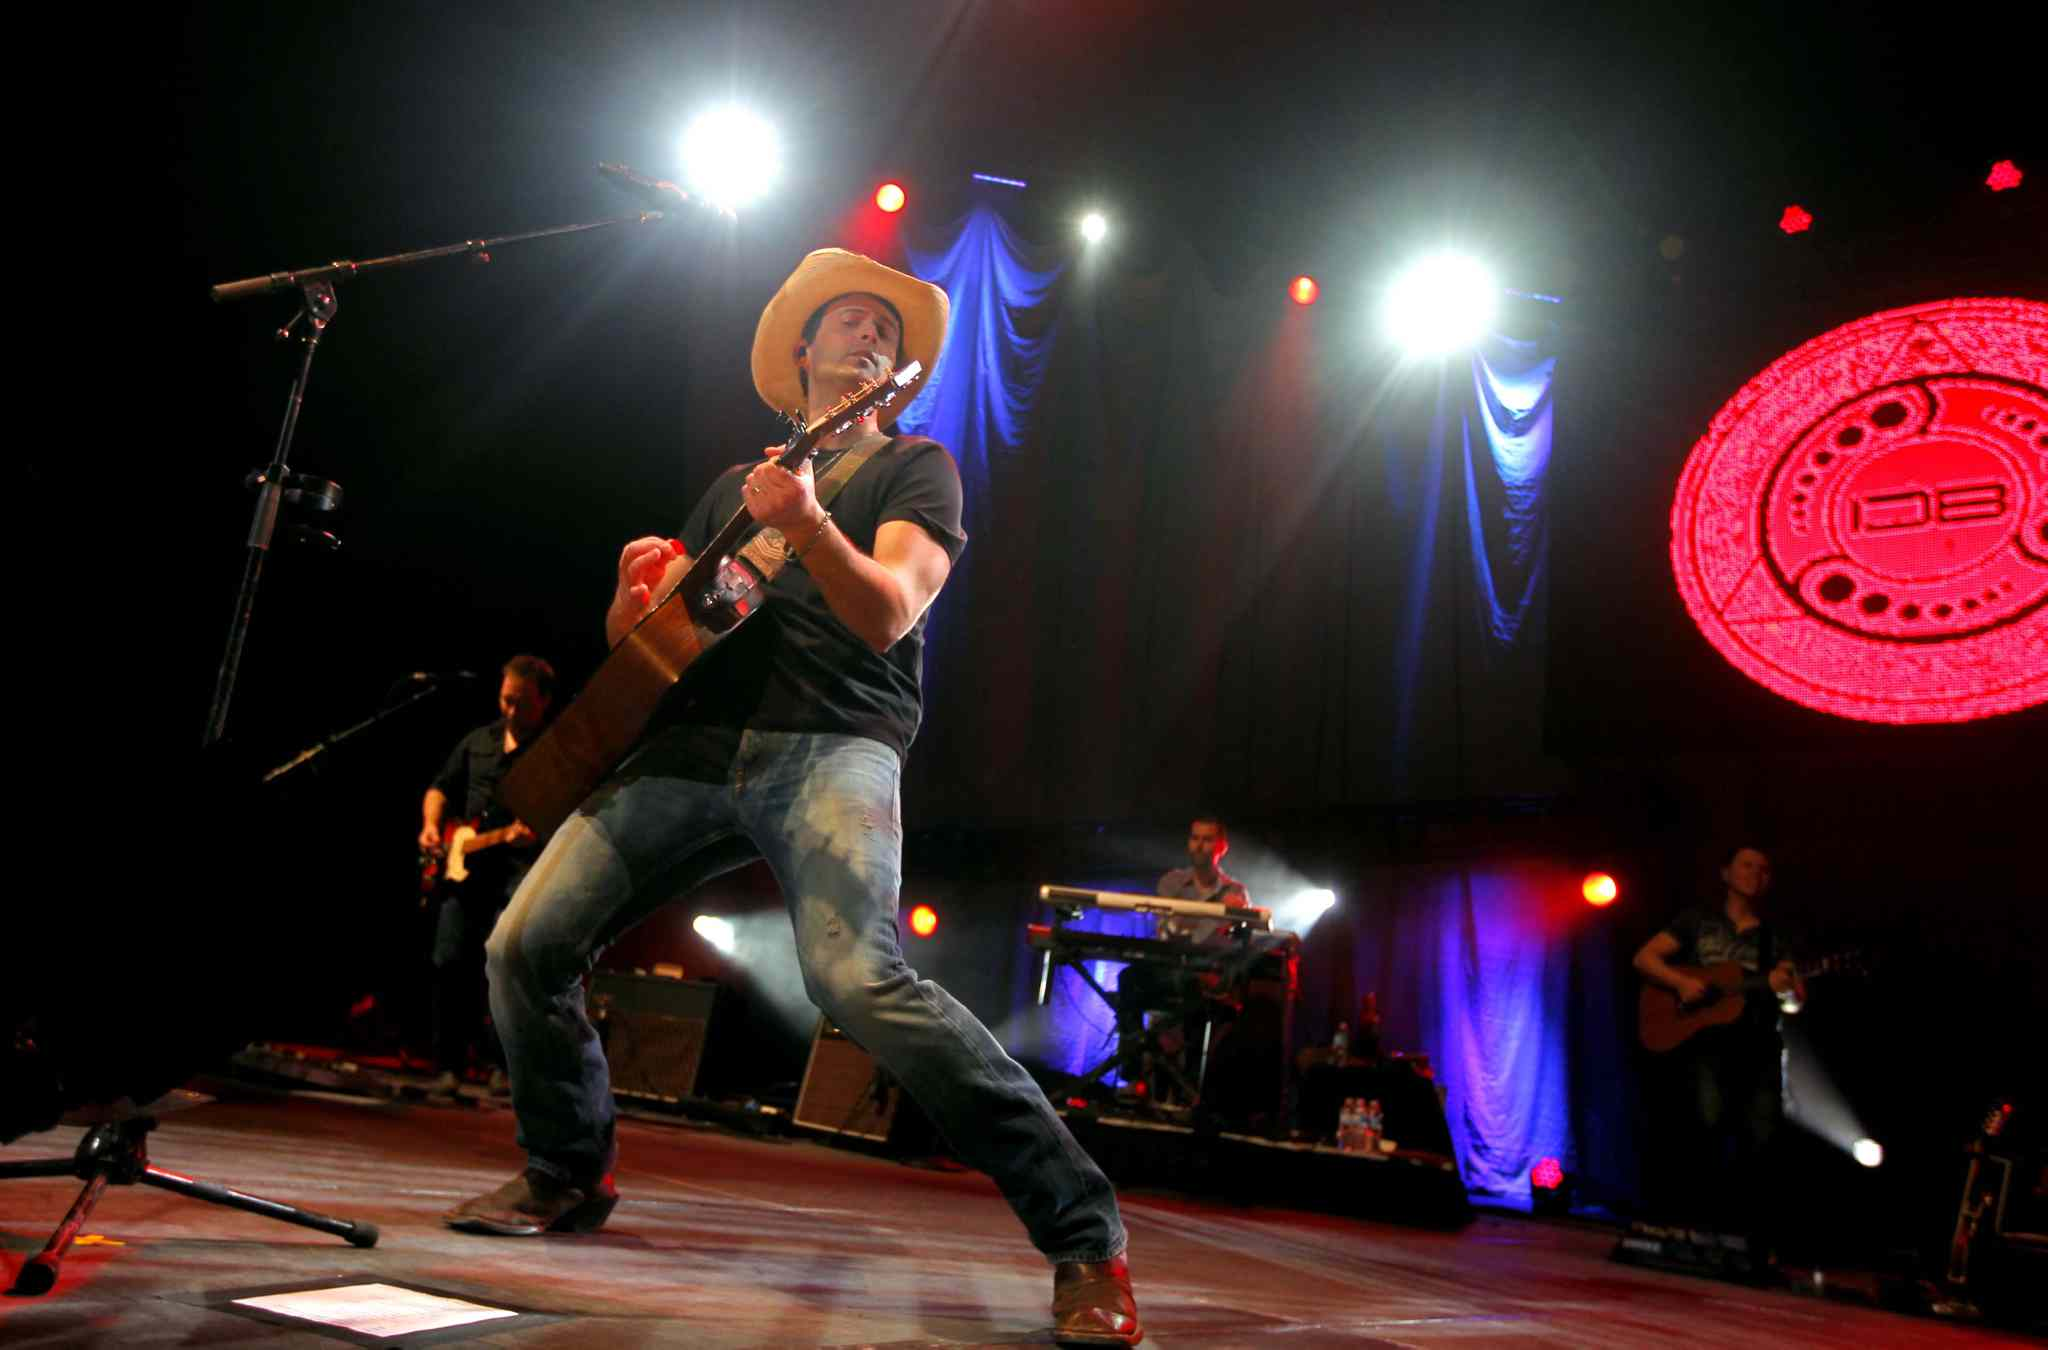 Dean Brody and his band rocked out in front of the MTS Centre crowd in Winnipeg Wednesday.